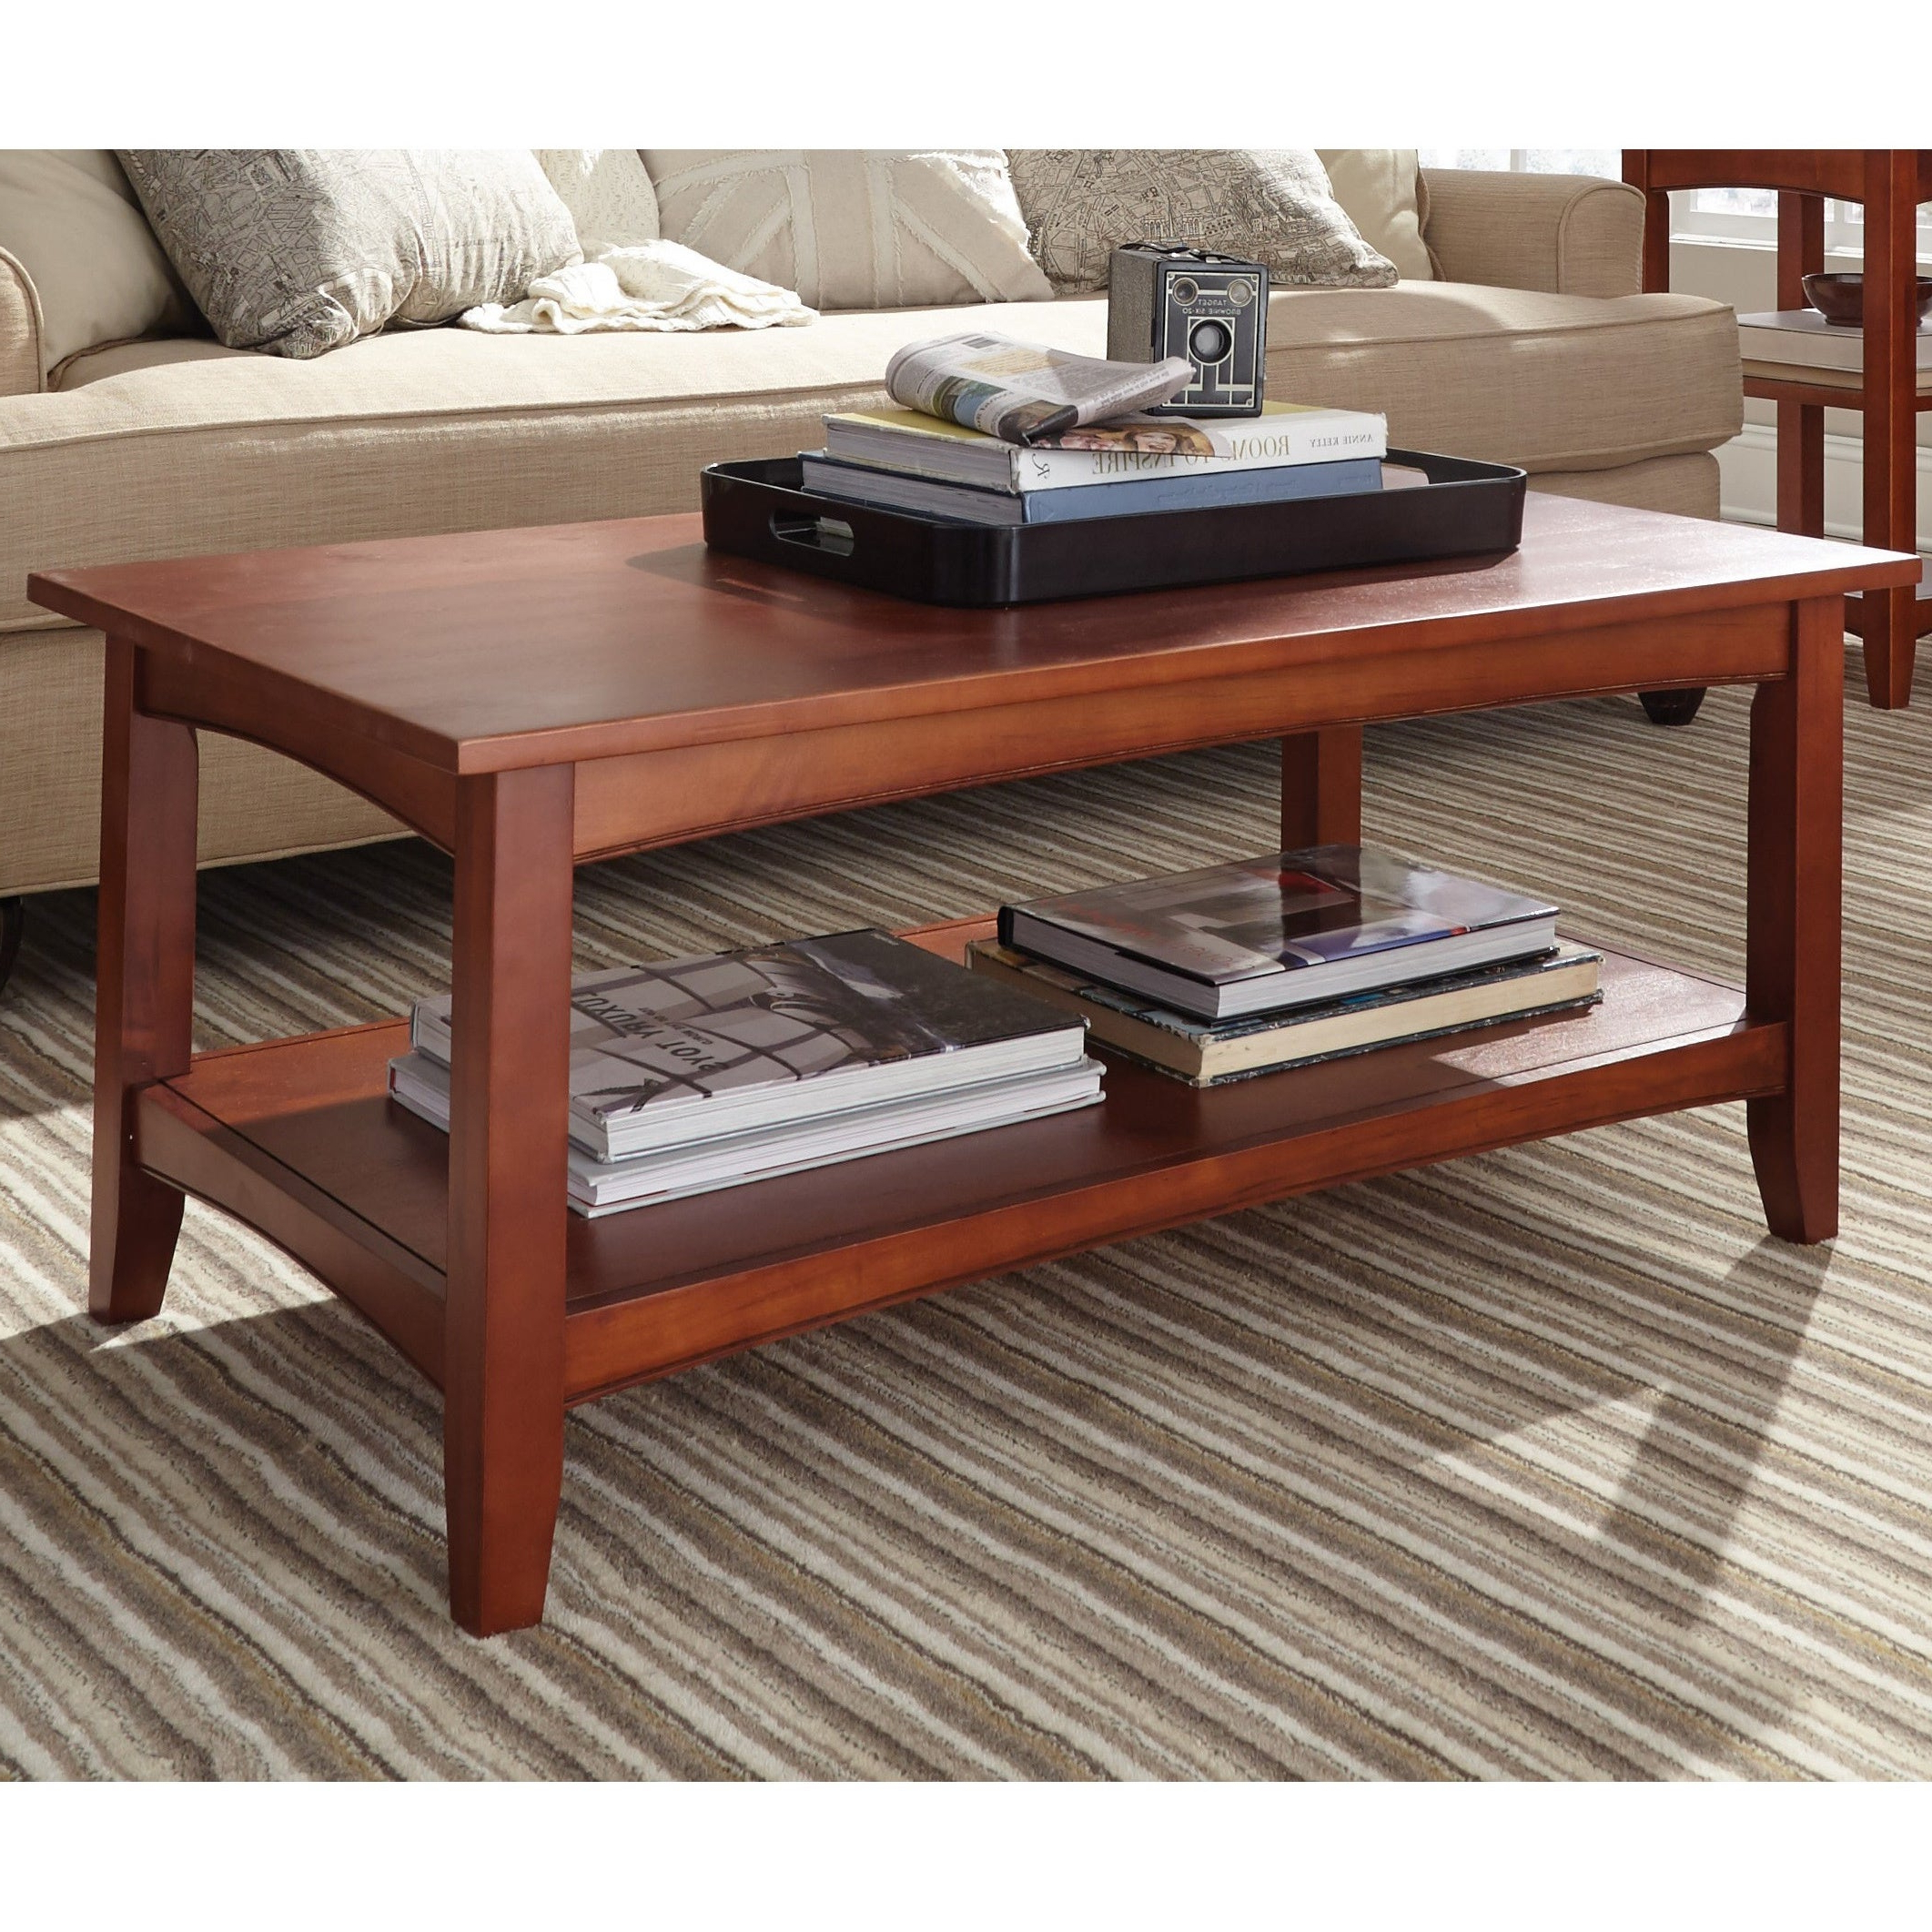 Copper Grove Daintree 42 Inch Wood Coffee Table With Shelf With Regard To Recent Copper Grove Bowron Dark Cherry Coffee Tables (View 9 of 20)